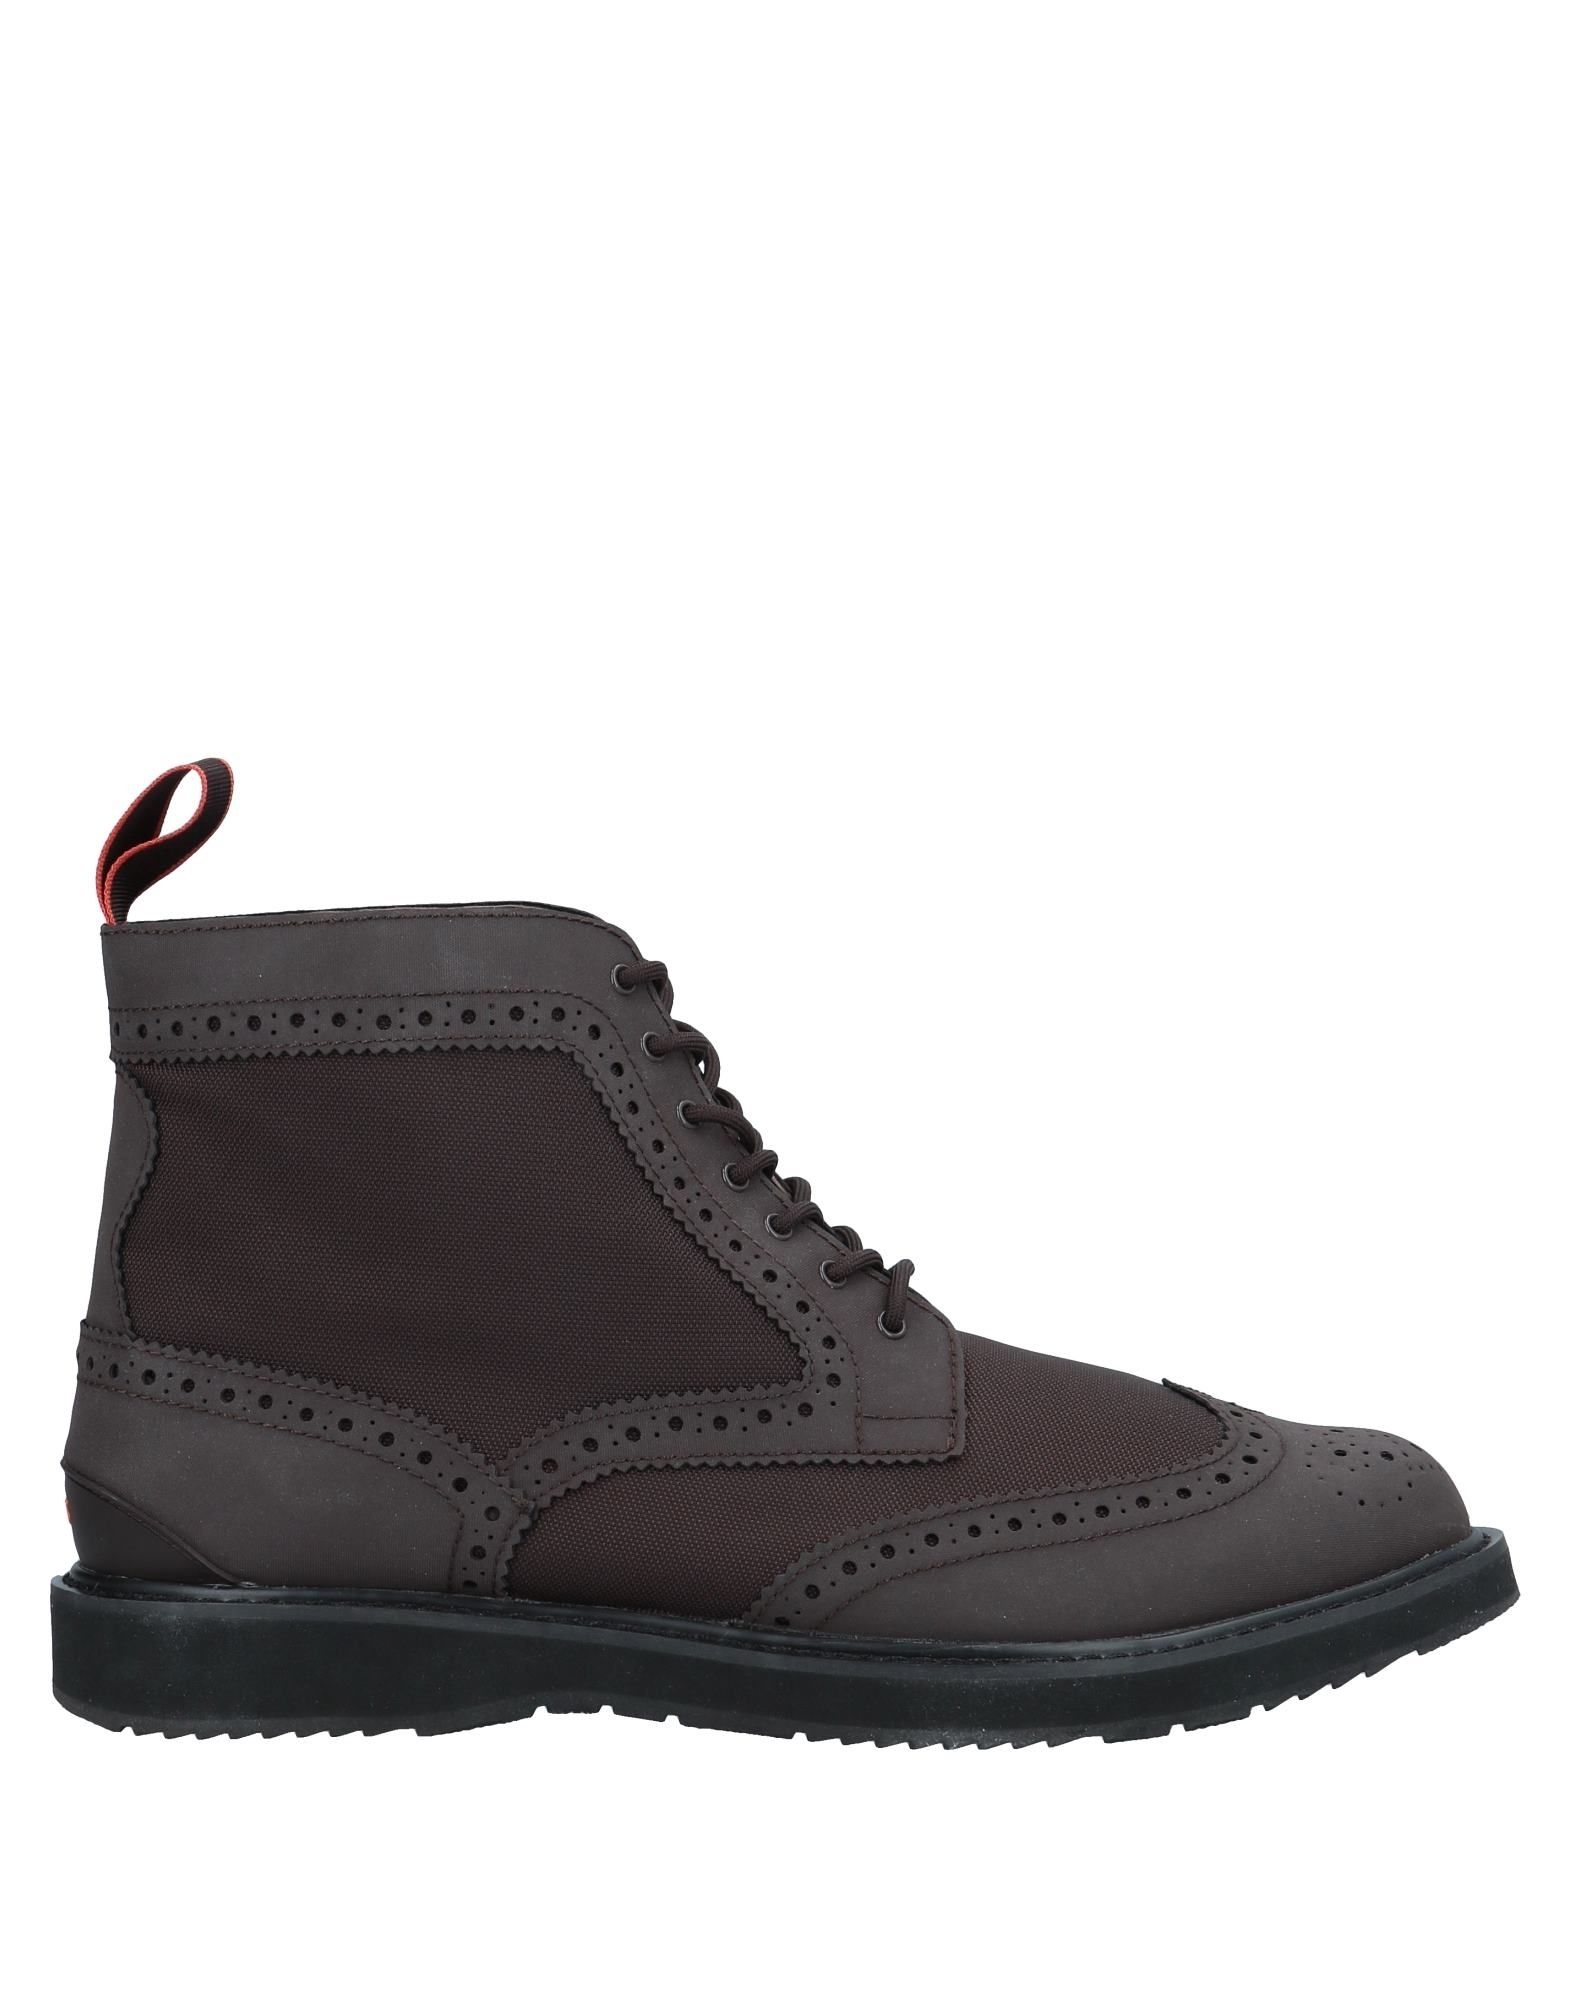 Swims Boots - Men Swims Boots online on 11546964IJ  United Kingdom - 11546964IJ on c2b928